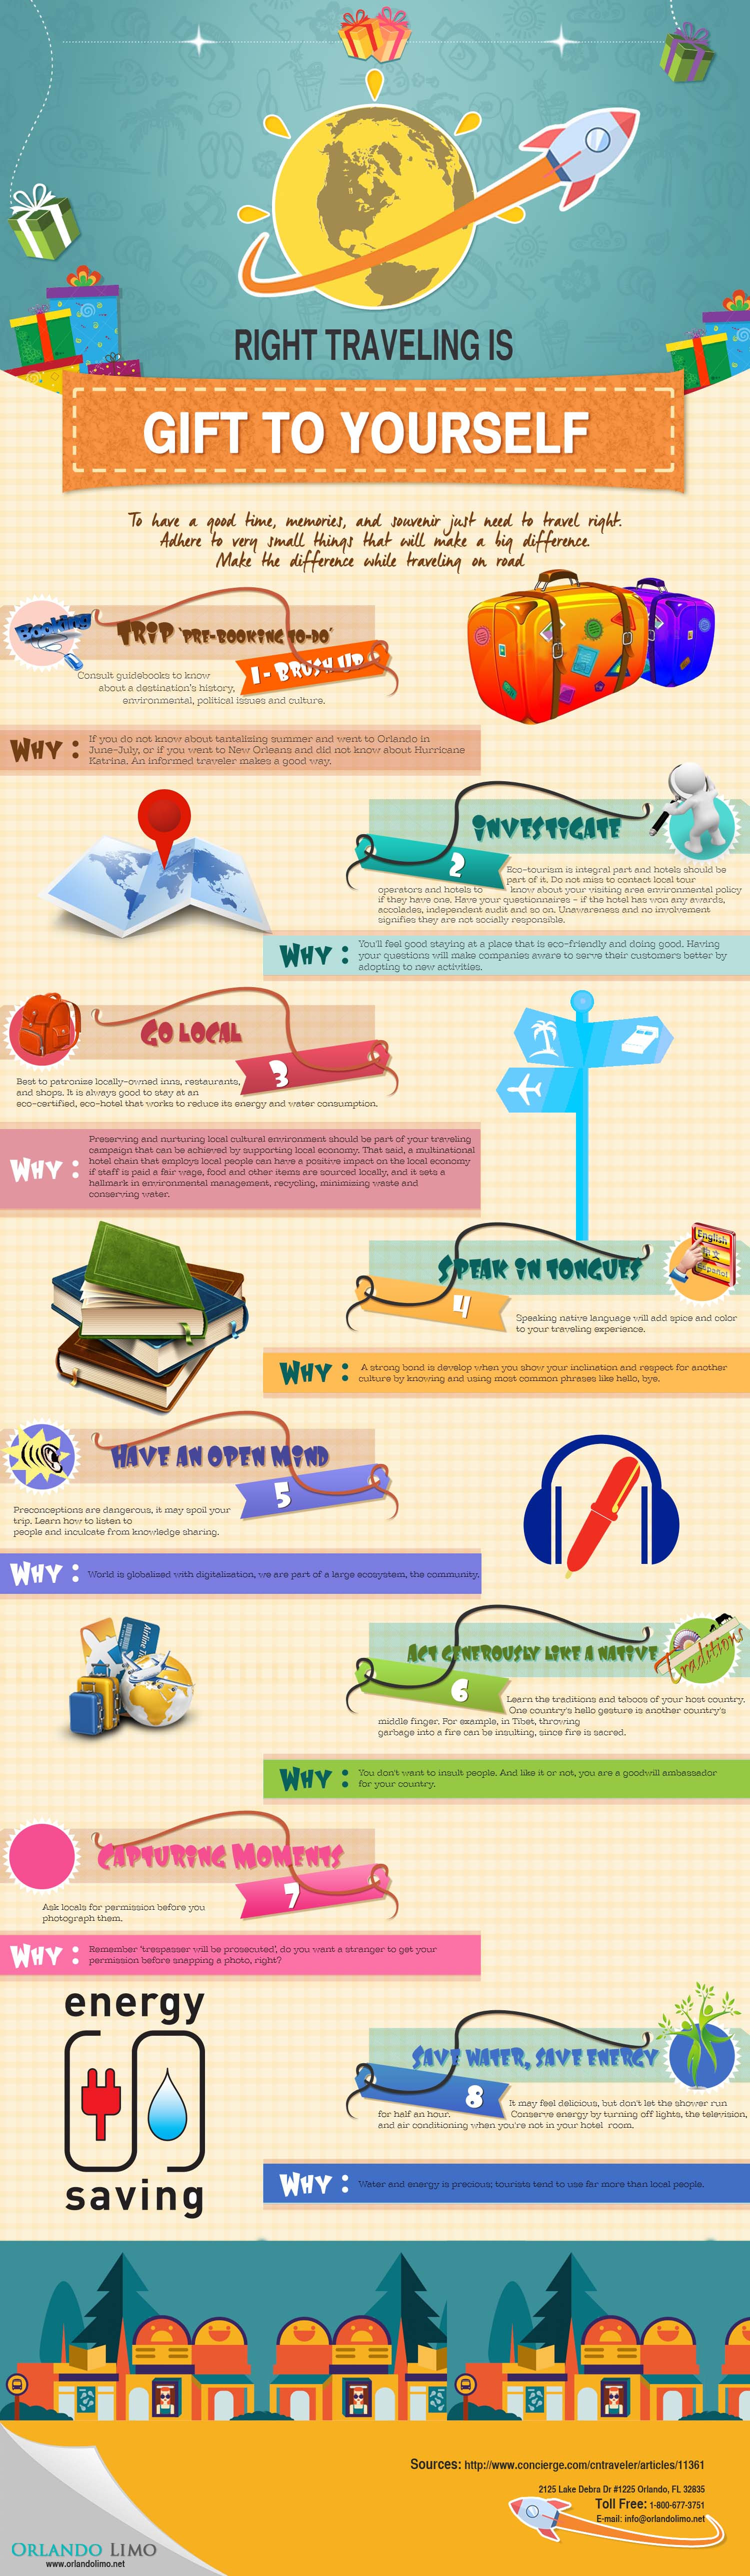 Right Traveling is Gift to Yourself Infographic